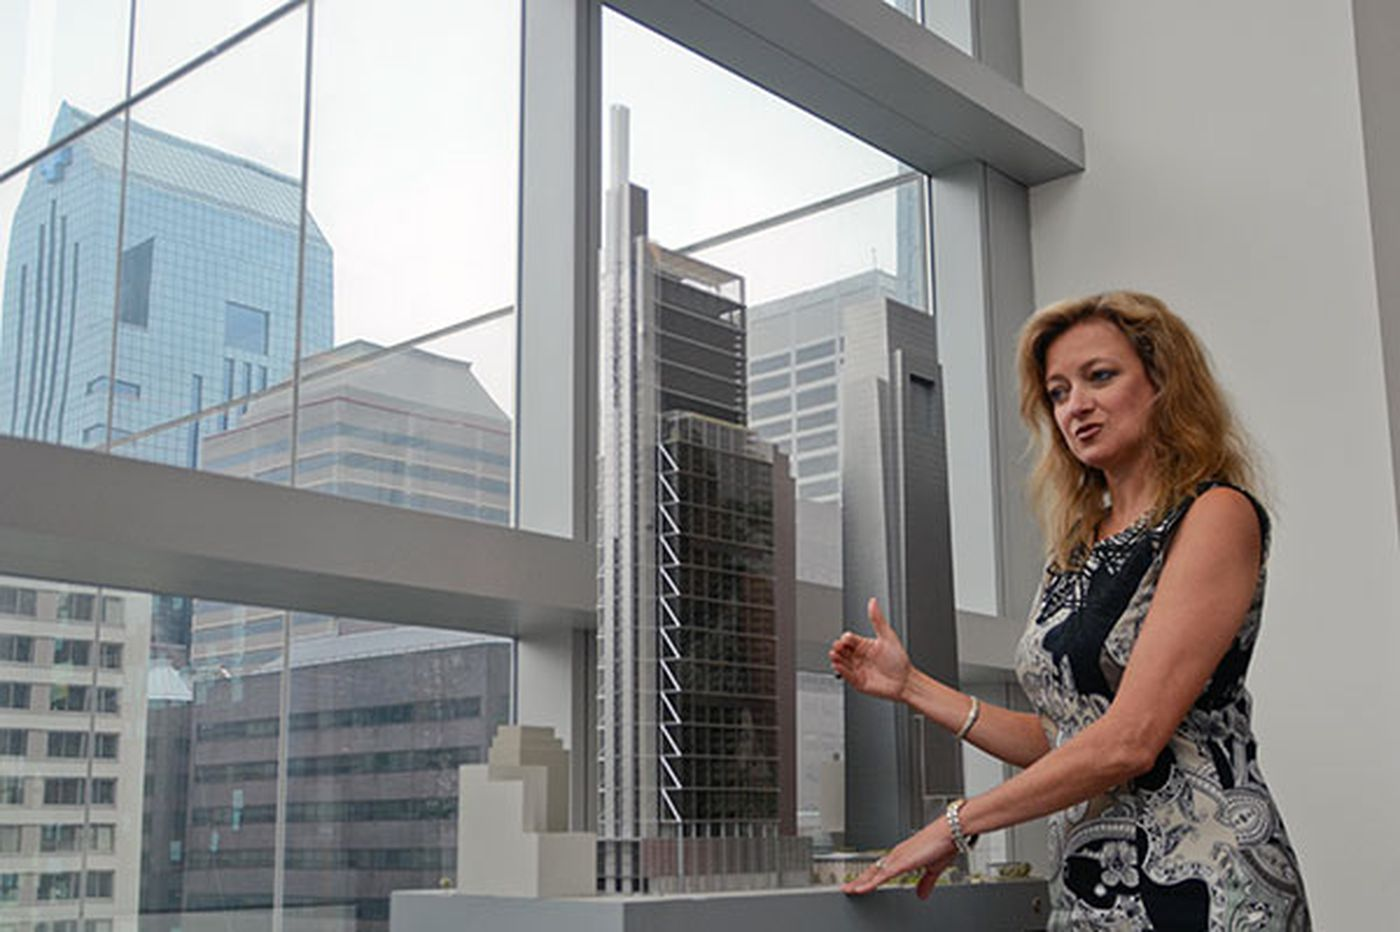 Planning the new Comcast tower, from large to small